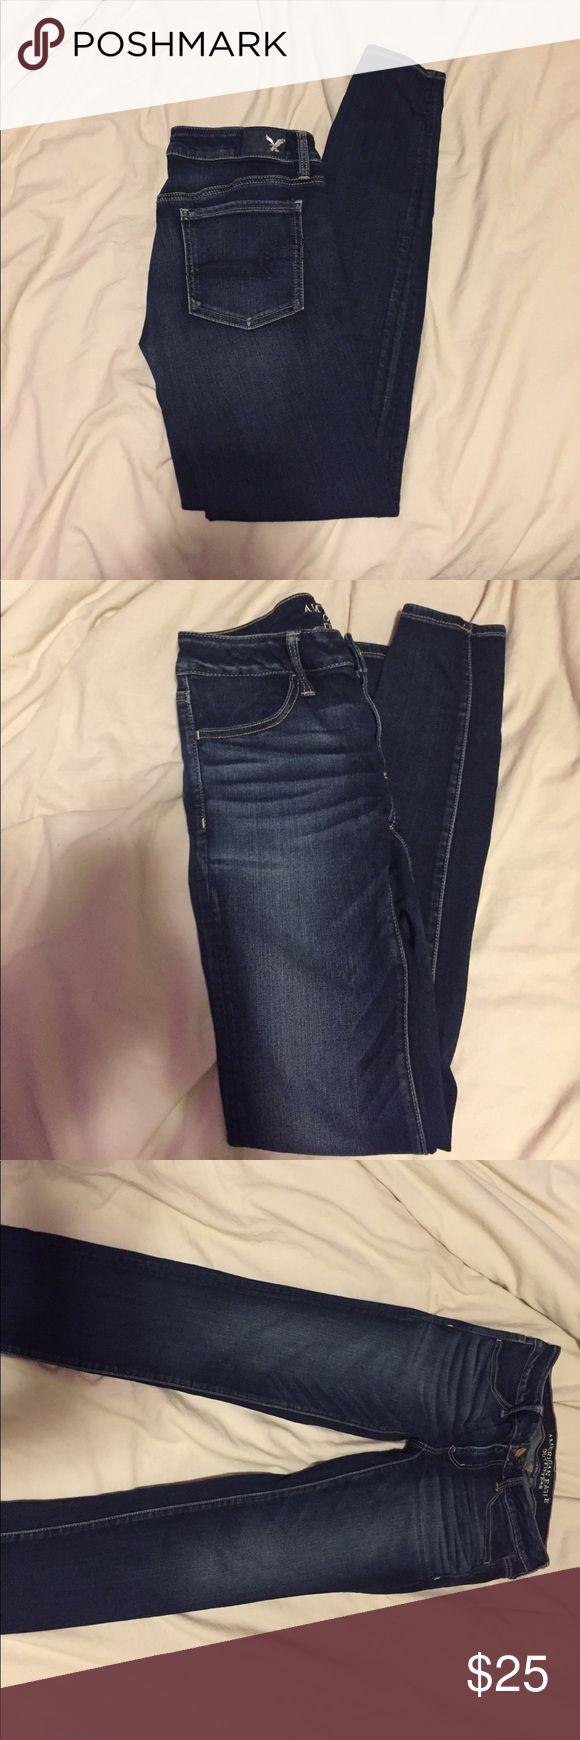 American Eagle // dark wash super low jegging Brand new jeans , they have never been worn just w/o tags, low rise , jegging, super stretchy and comfy, they are a dark blue wash, 6Long for those girls with long legs, mid rise , the perfect dark wash denim American Eagle Outfitters Jeans Skinny